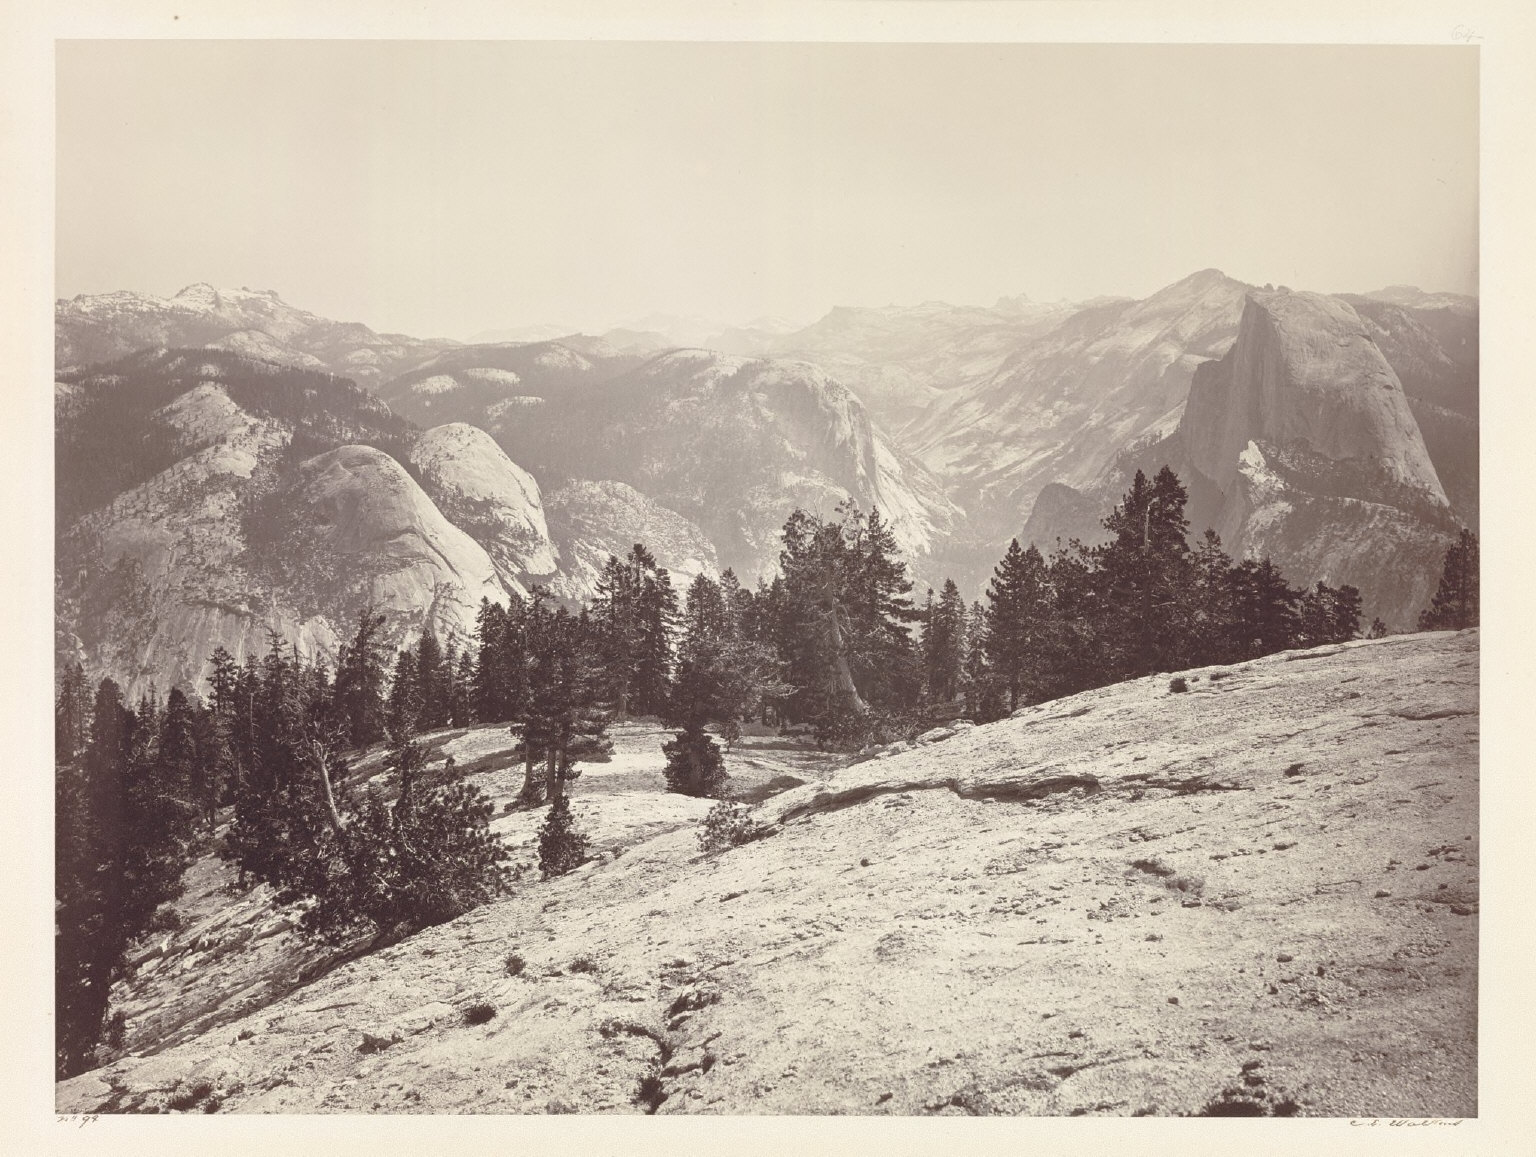 The Domes, from the Sentinel Domes, Yosemite